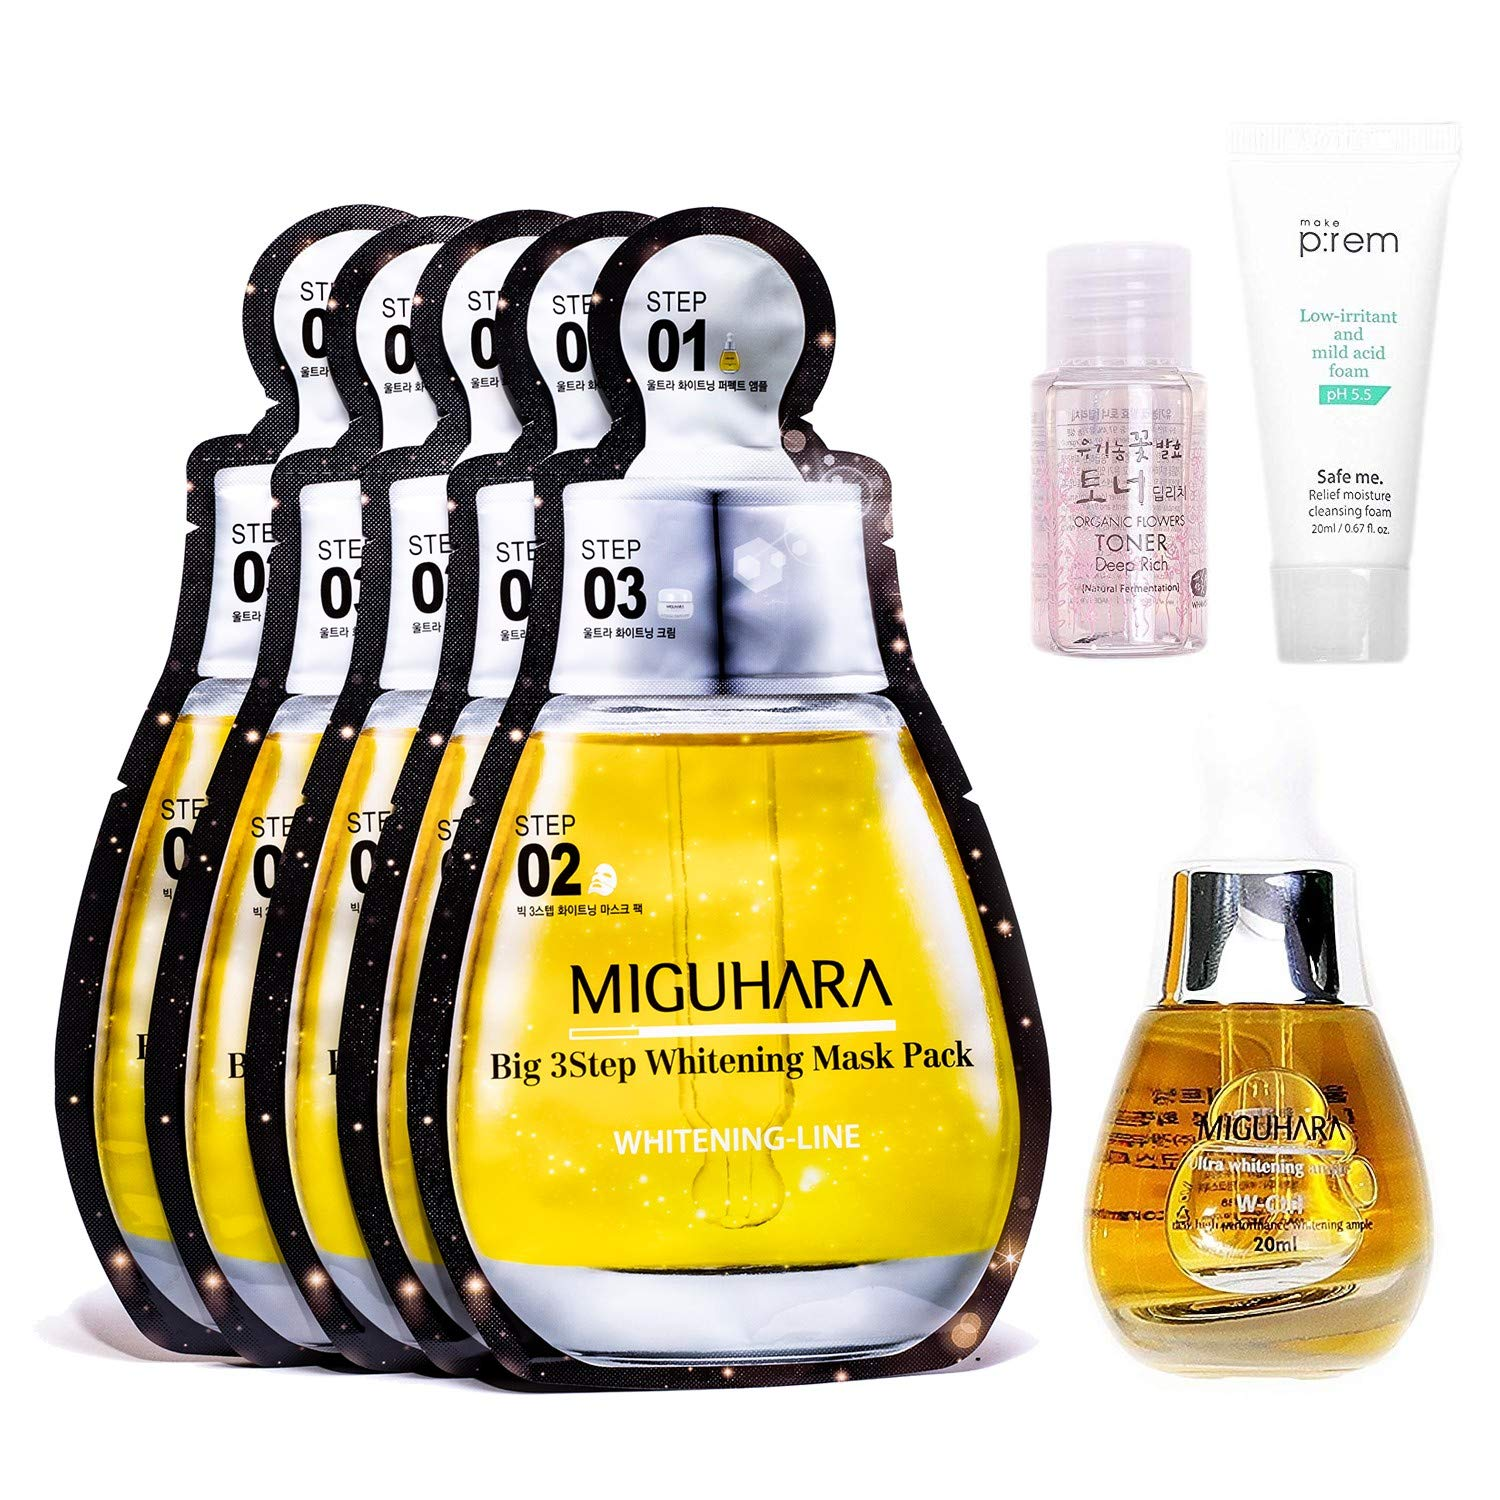 MIGUHARA Ultra Whitening Ample 20ml & Big 3 Step Ample Facial Mask of 5 sheets | Skin Brightening Whitening Ample formulated with Niacinamide Vitamin B3 & Allantoin, Moisturizing | Korean Skin Care